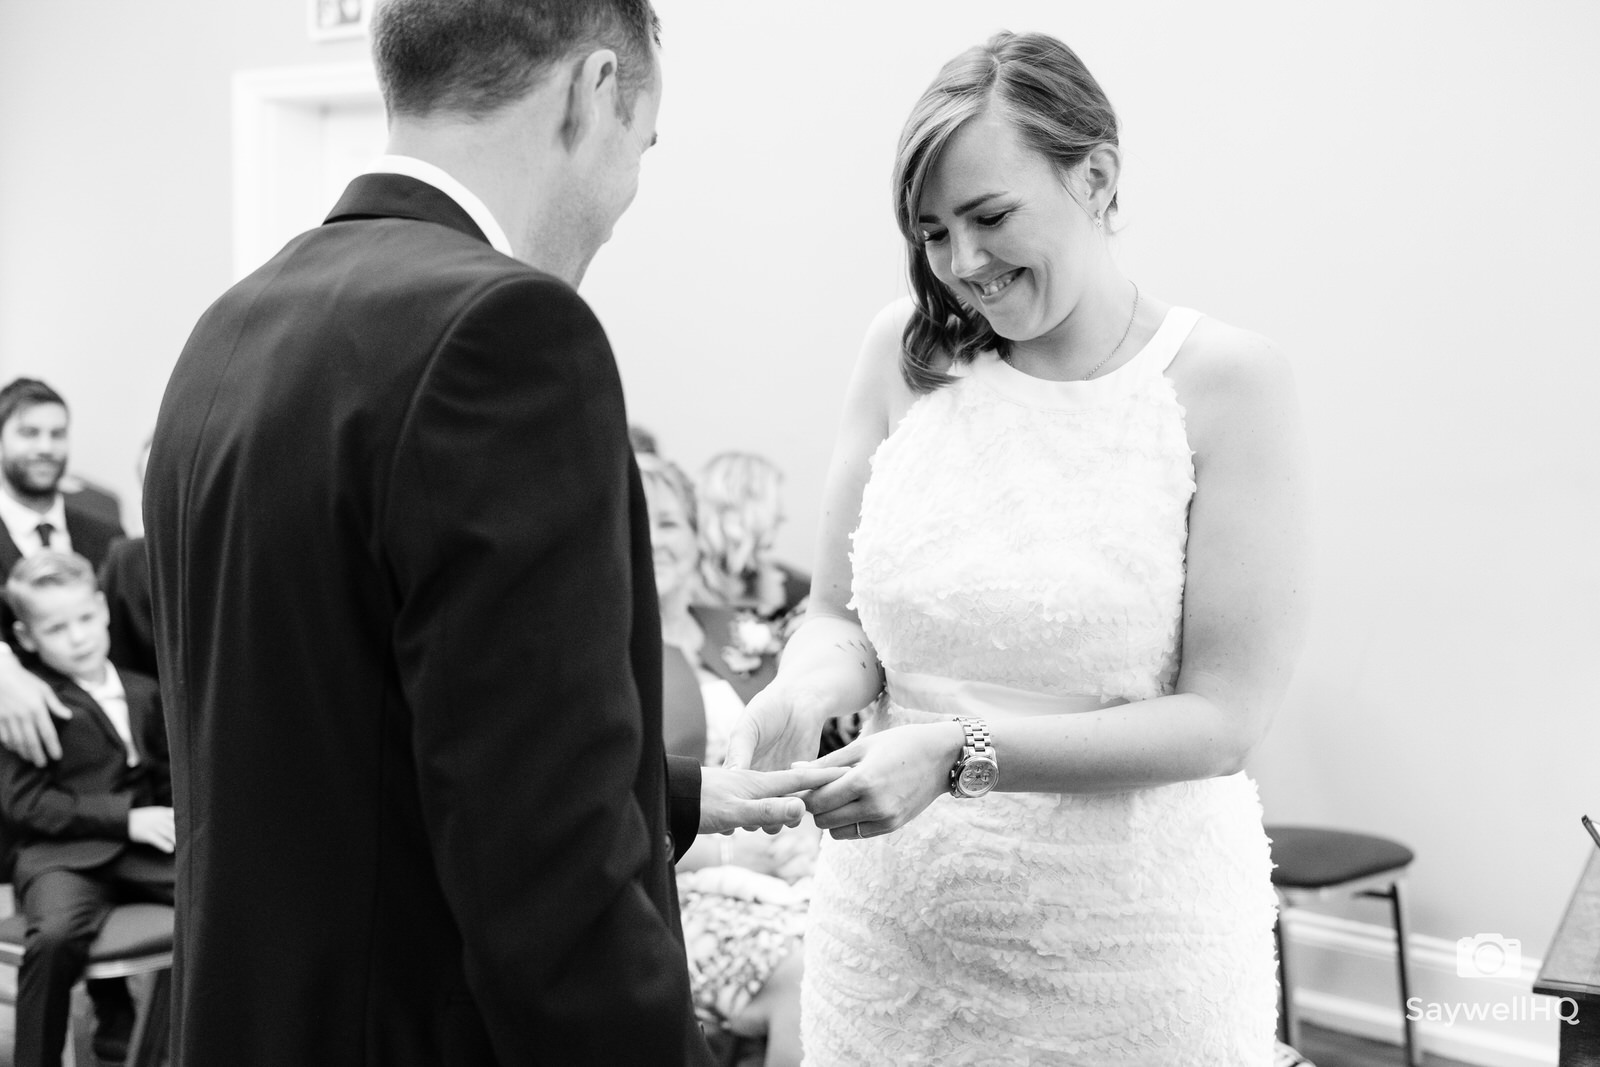 west bridgford wedding photography - bride and groom exchange rings during the wedding ceremony